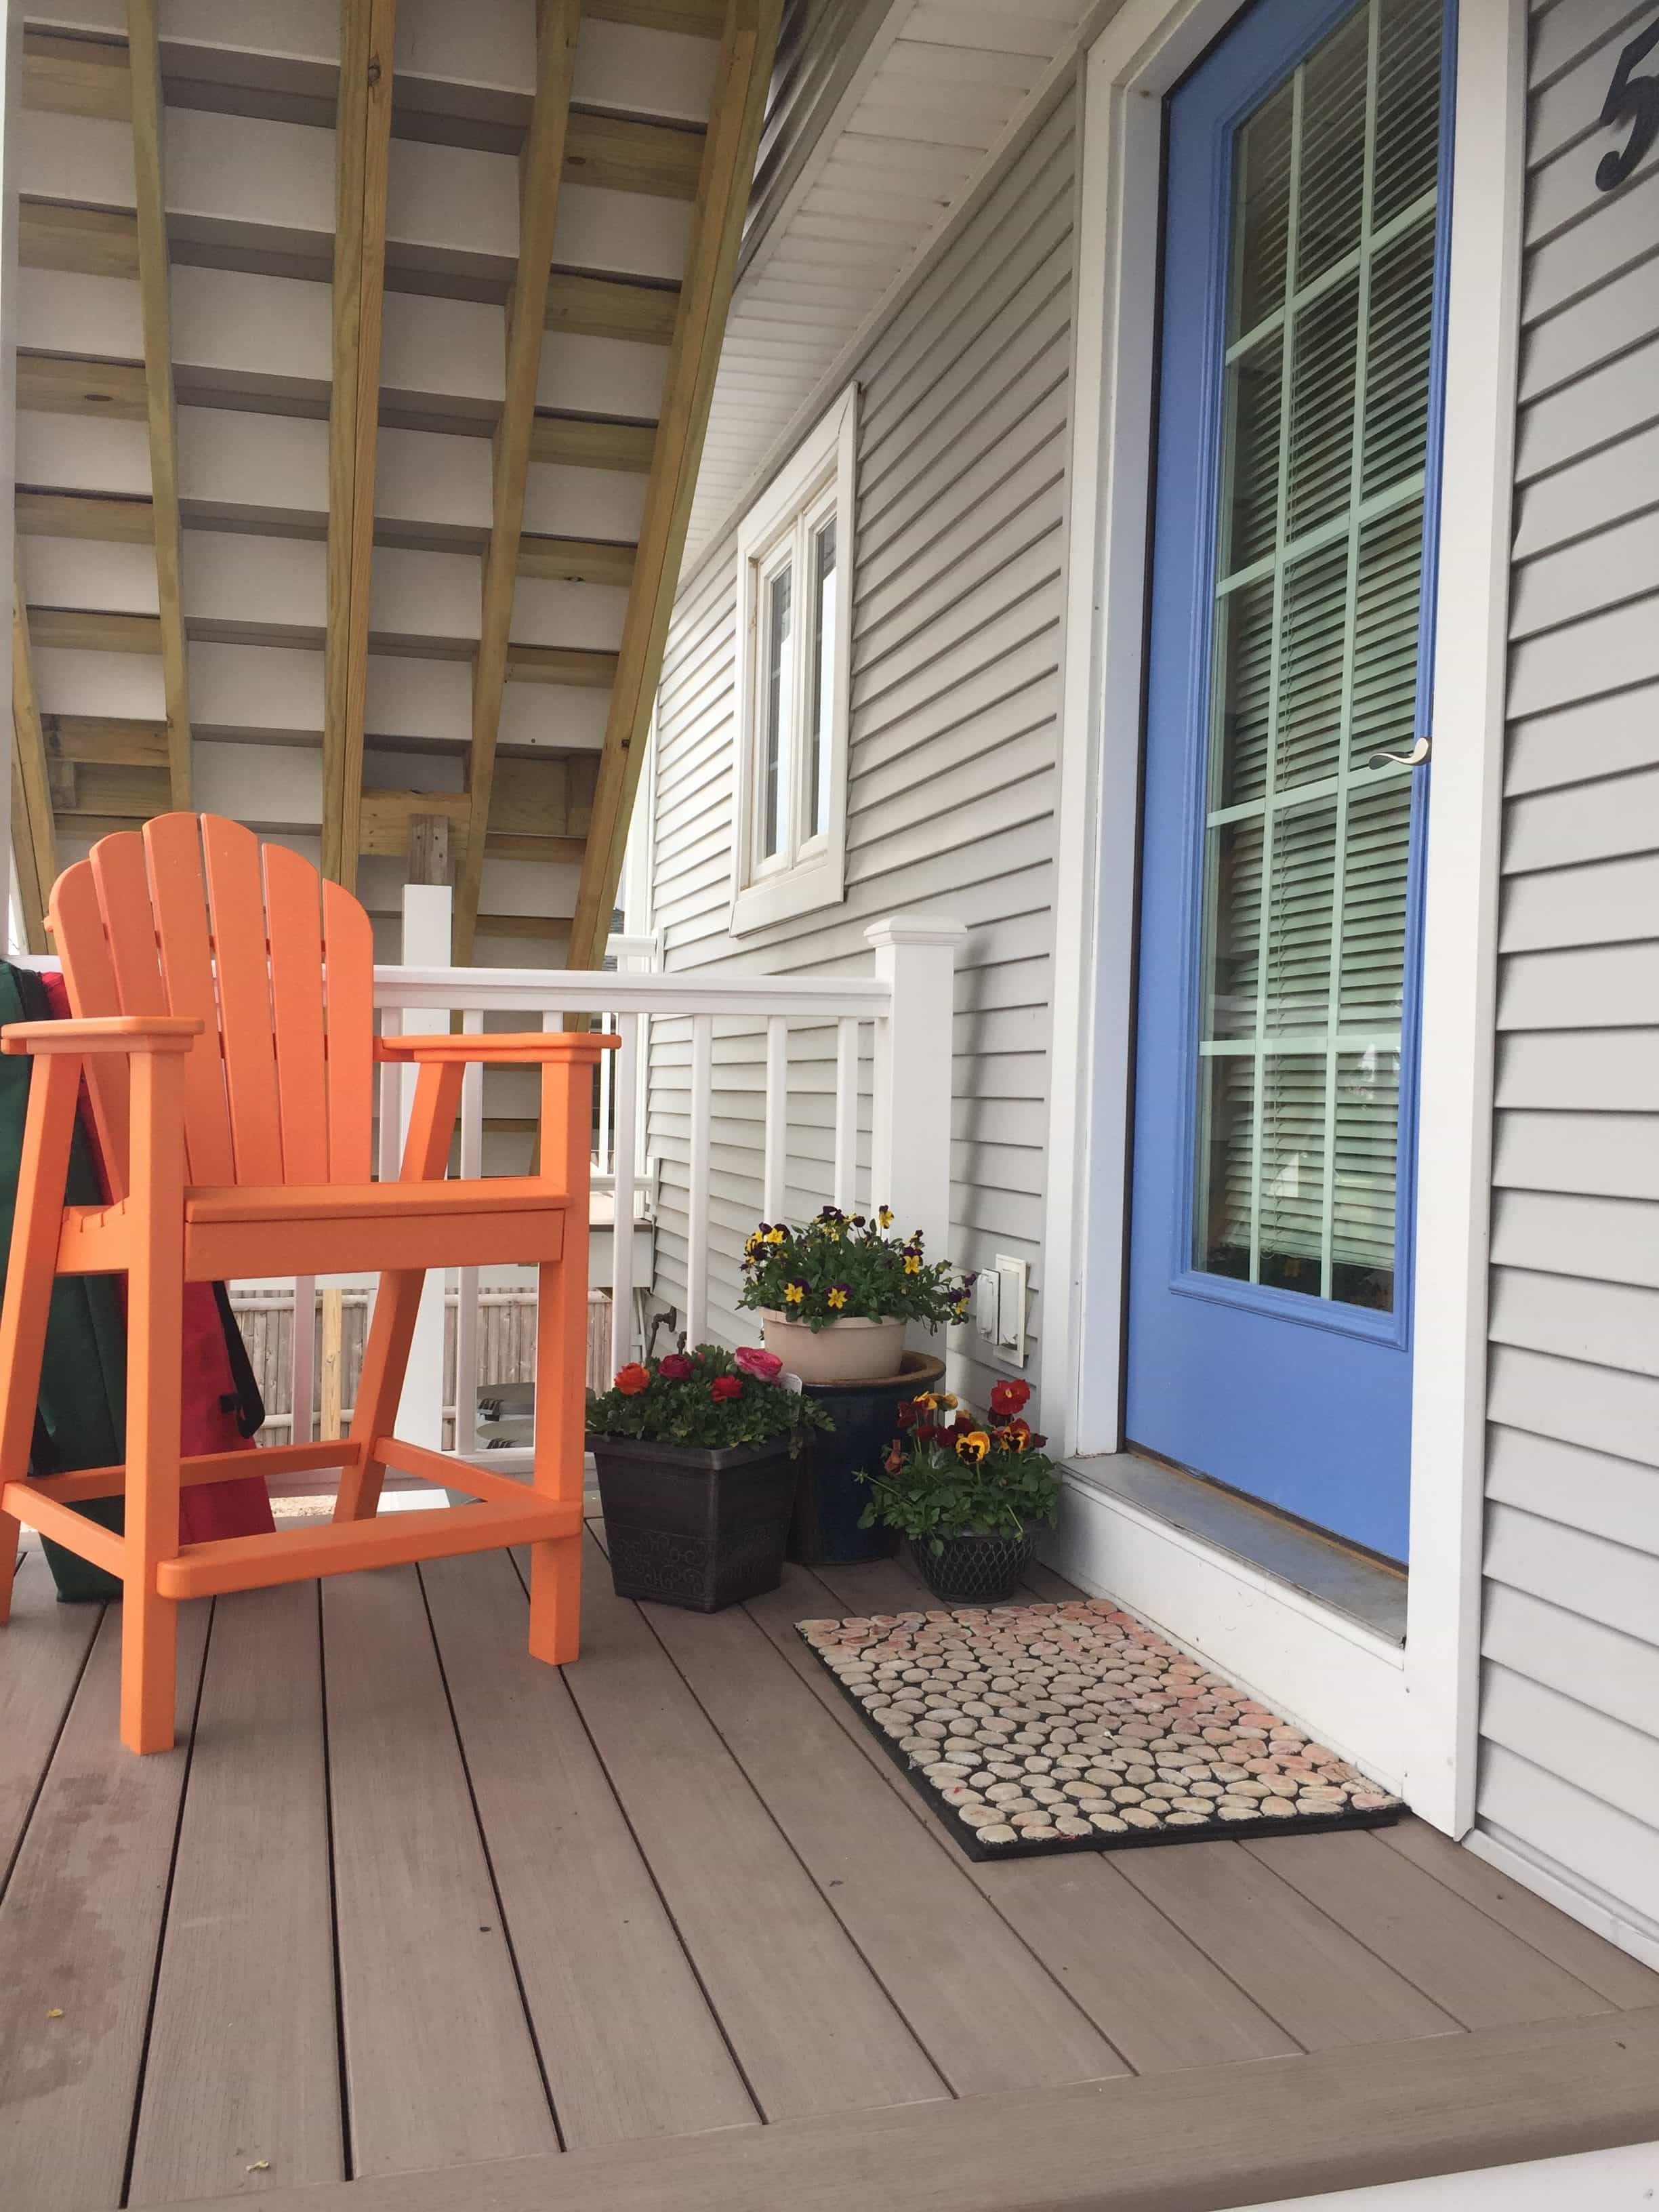 misquamicut charlestown rhode ri cottage lea avenue cottages sea beach rentals island